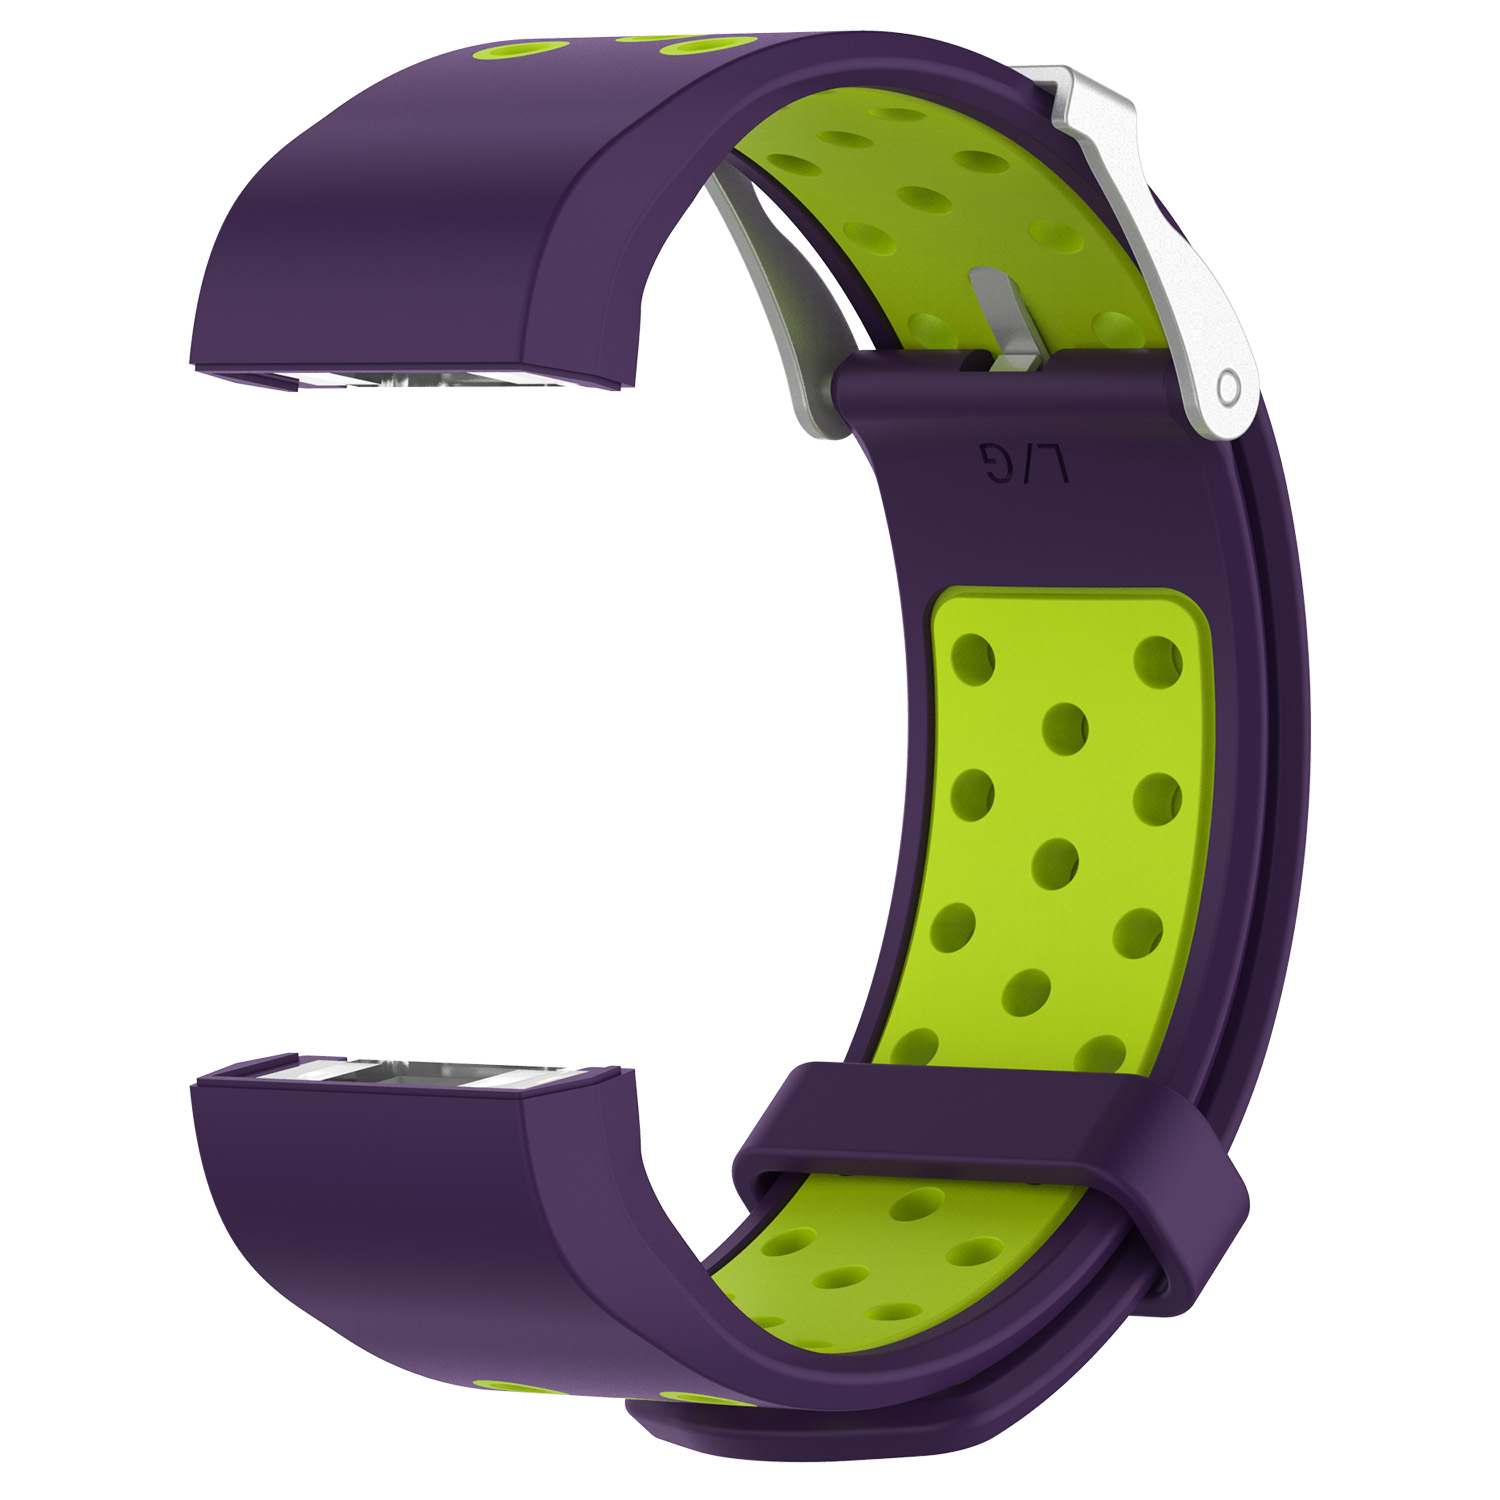 Replacement-Silicone-Wristband-Watch-Strap-Bands-Bracelet-For-Fitbit-Charge-2 thumbnail 102